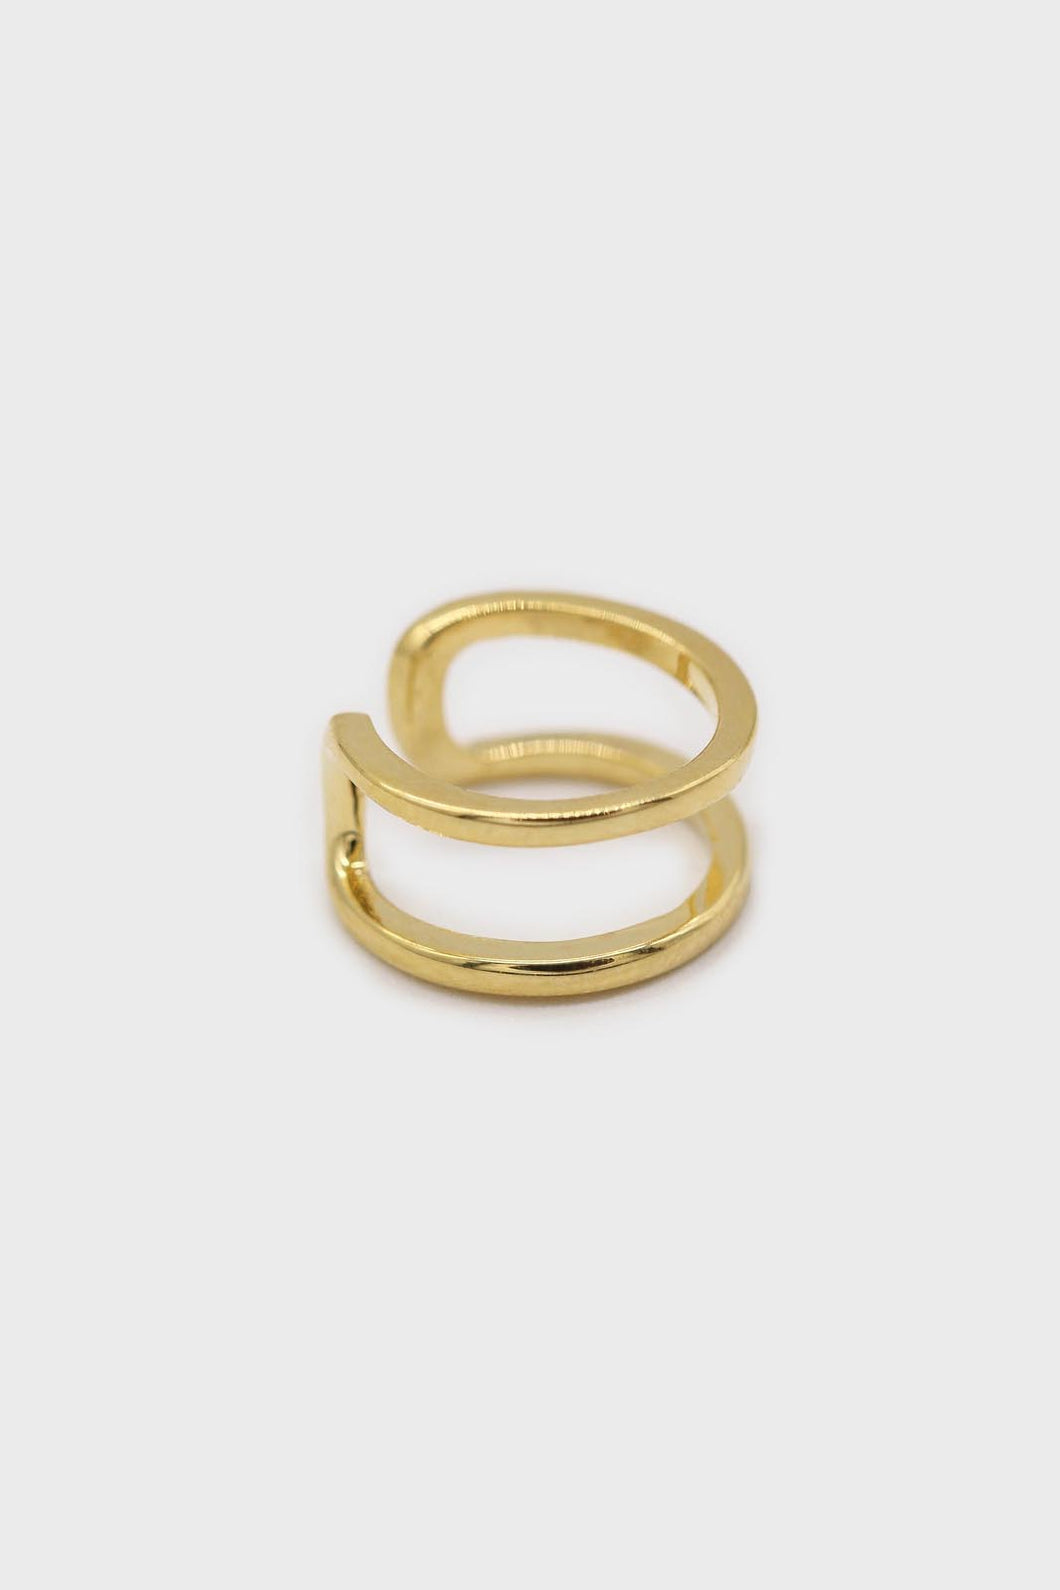 Gold simple double tier ear cuff - 8mm1sx